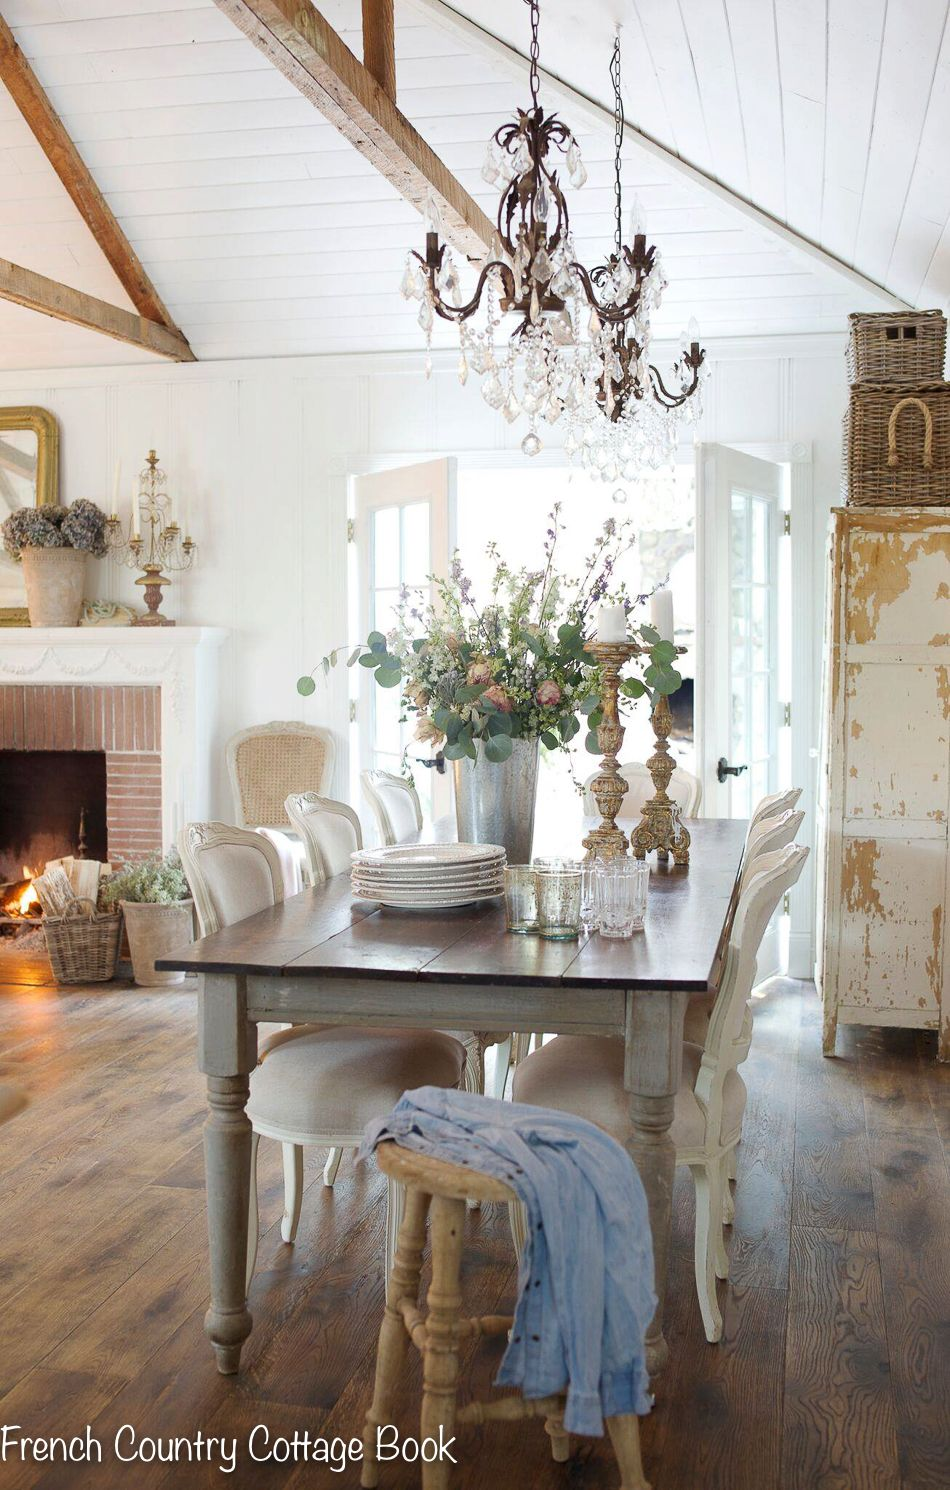 How A Simple Change Can Bring A Fresh Look French Country Cottage French Country Living Room French Country House French Country Kitchens